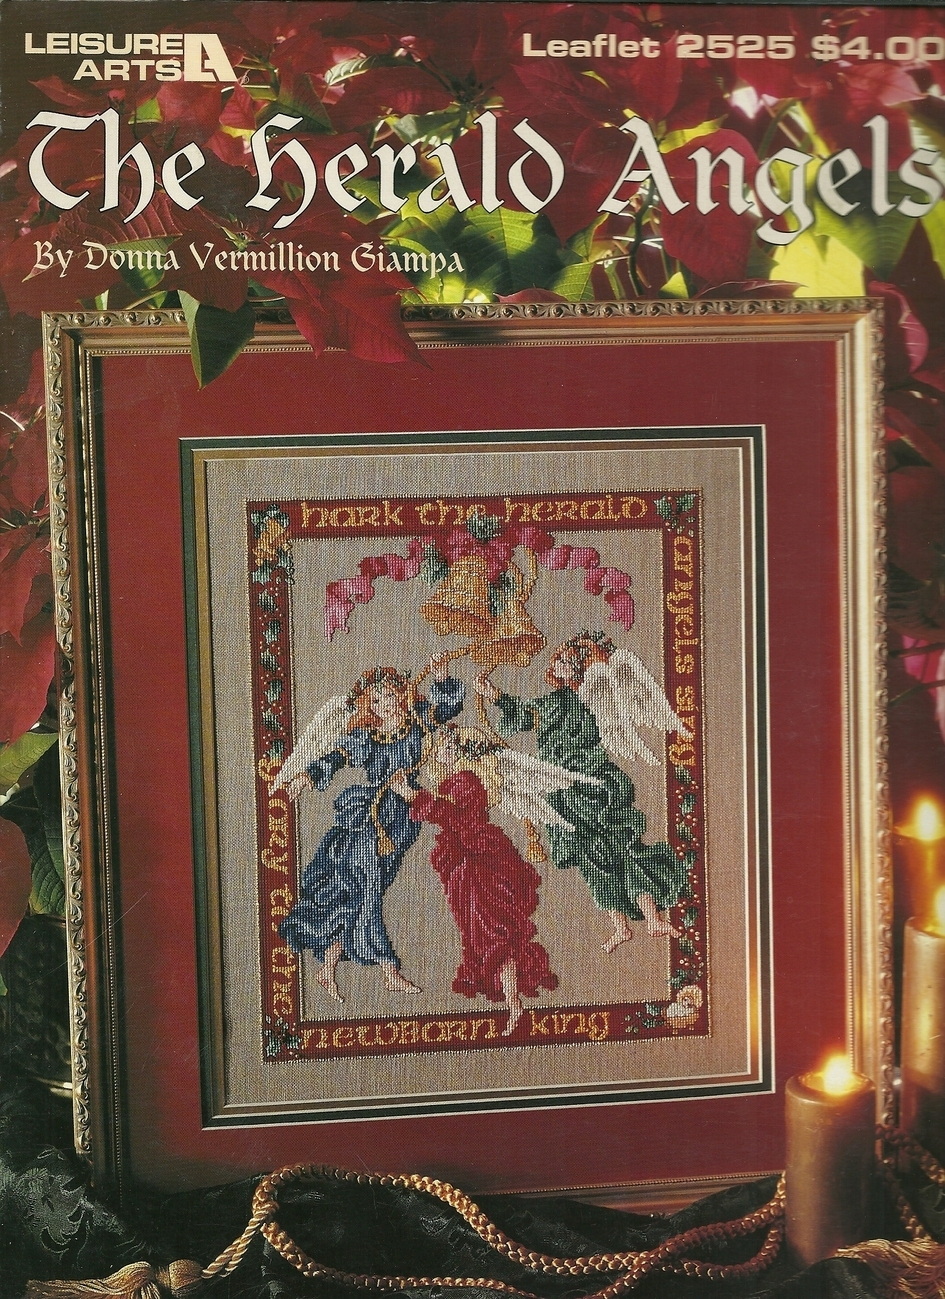 Herald Angels Cross Stitch Pattern Leaflet 2525 Leisure Arts